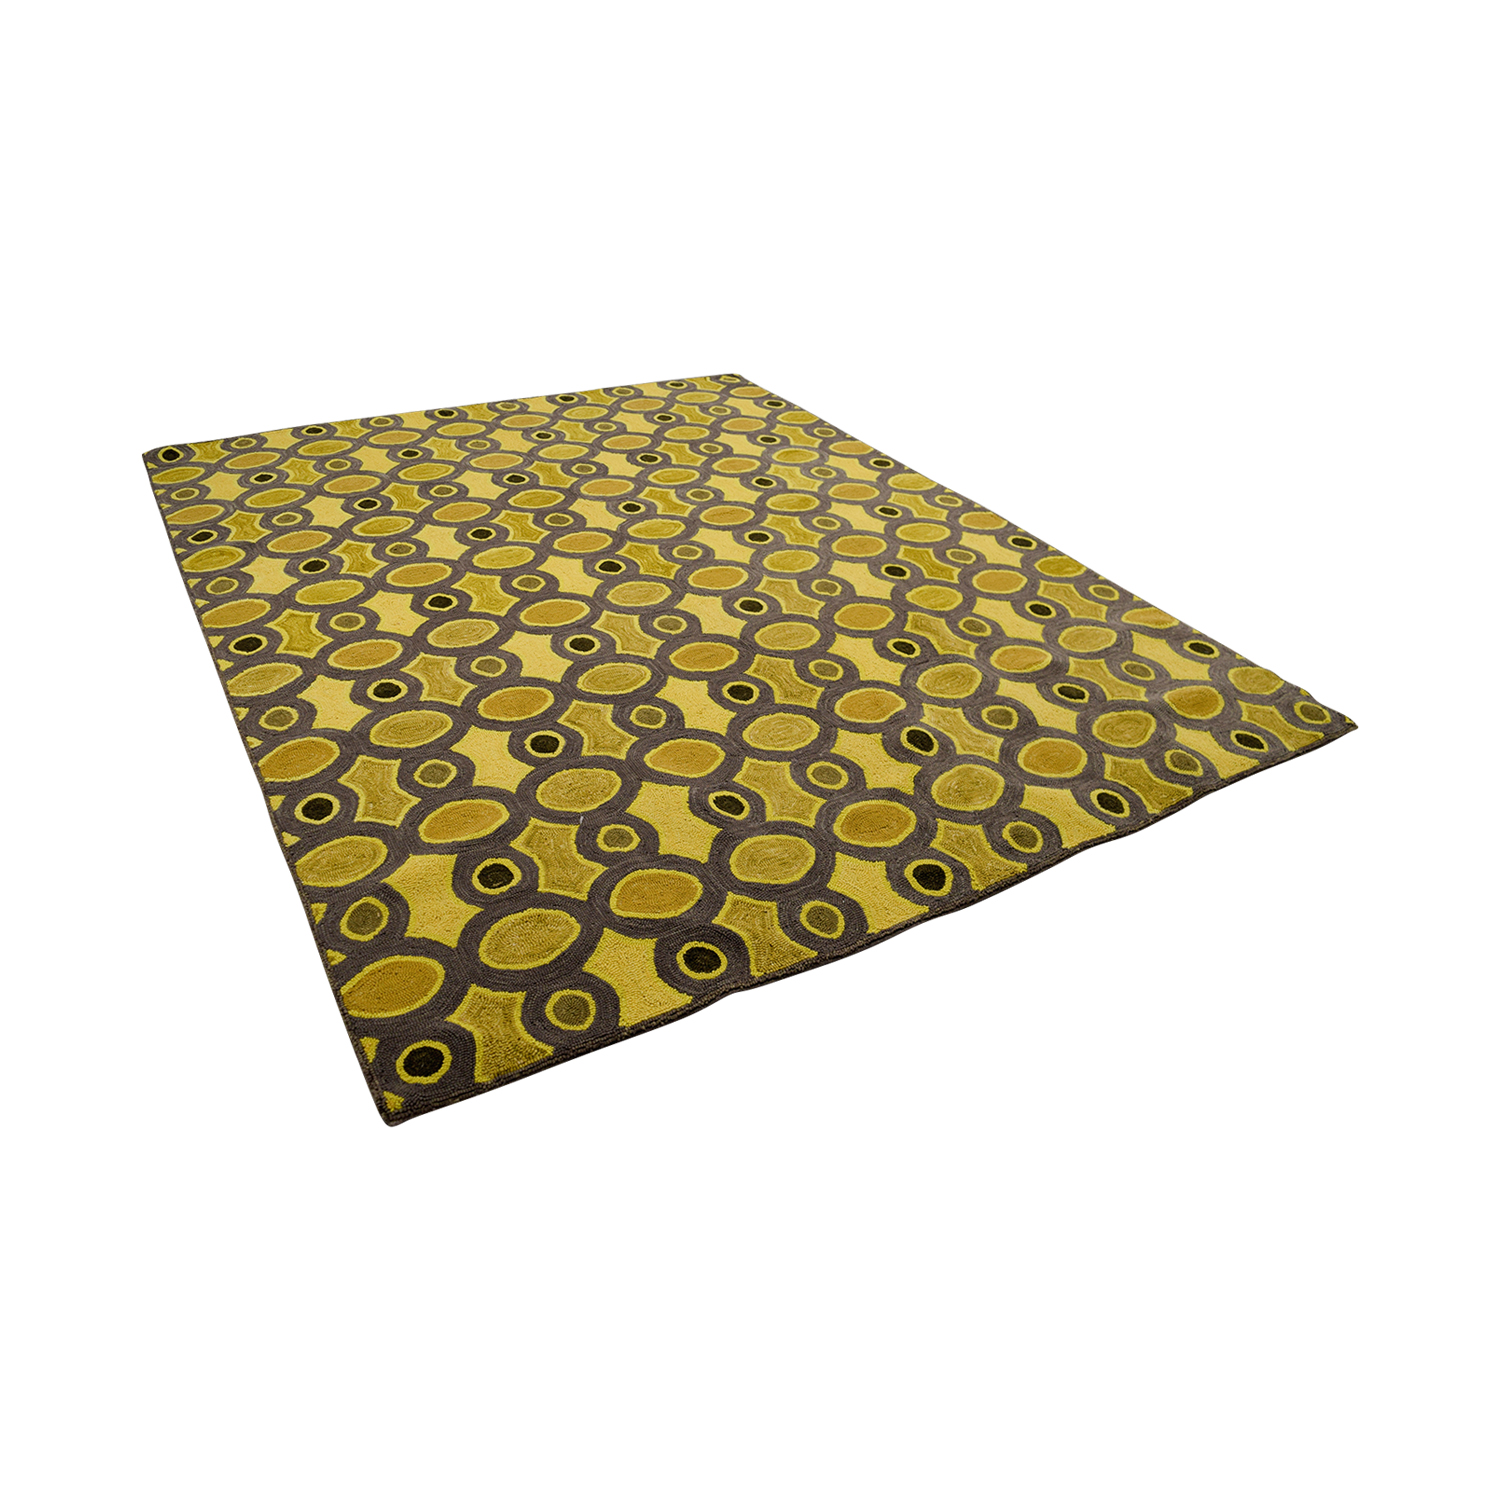 Obeetee Obeetee Hand Hooked Yellow Grey Rug coupon